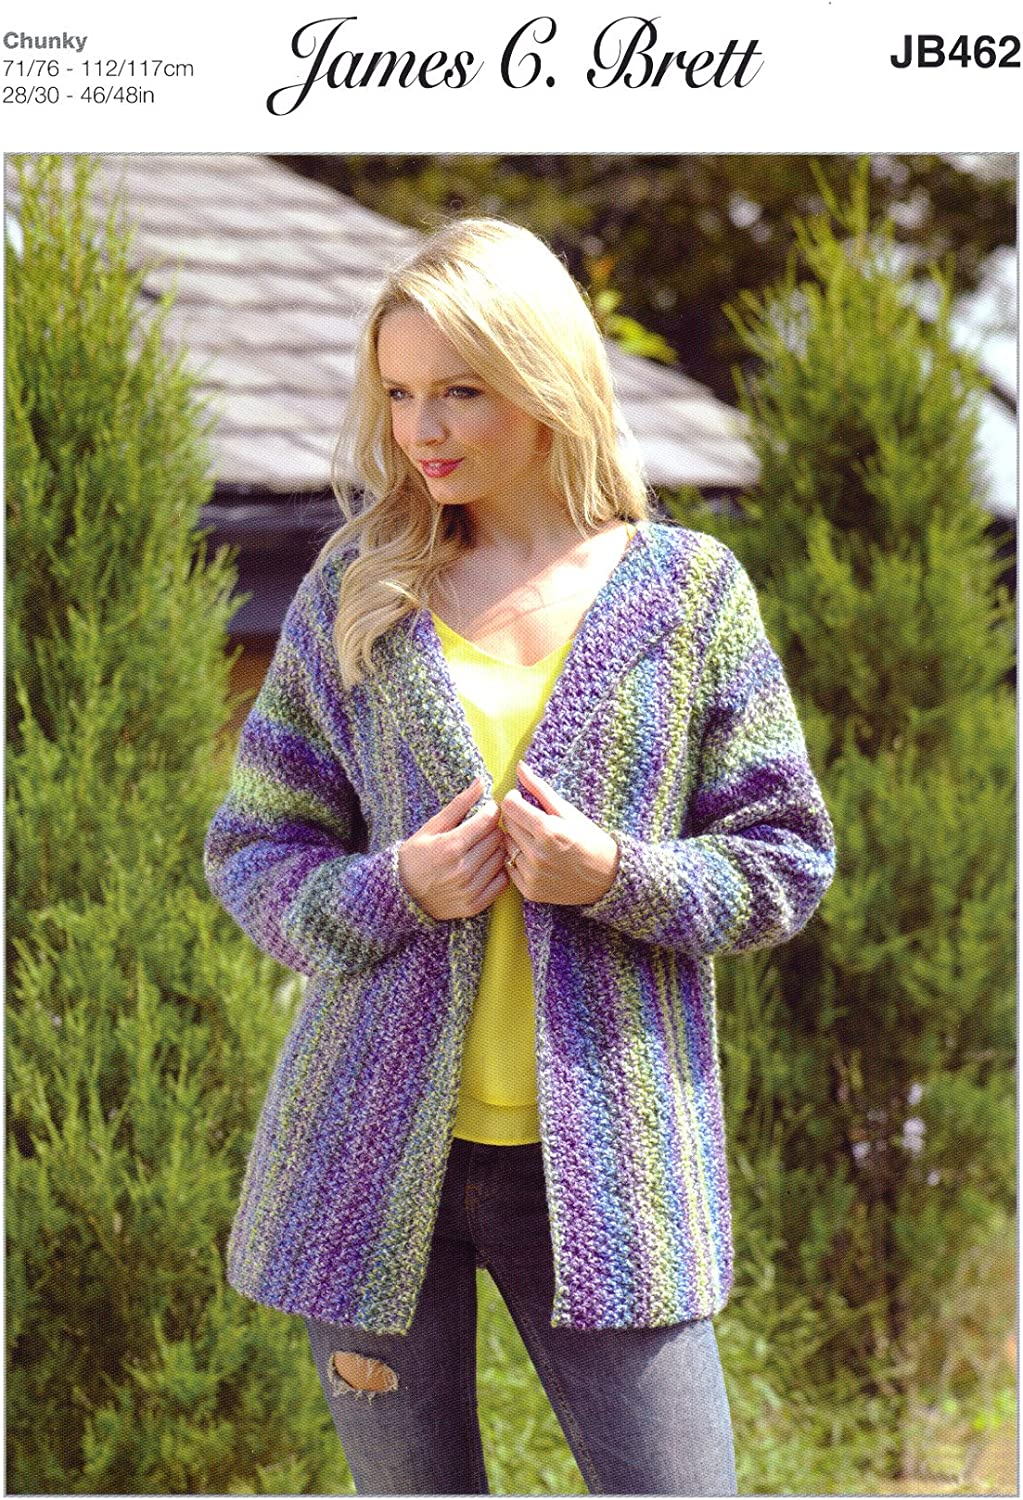 JB112 James C Brett Ladies Mega Chunky Jacket Knitting Pattern